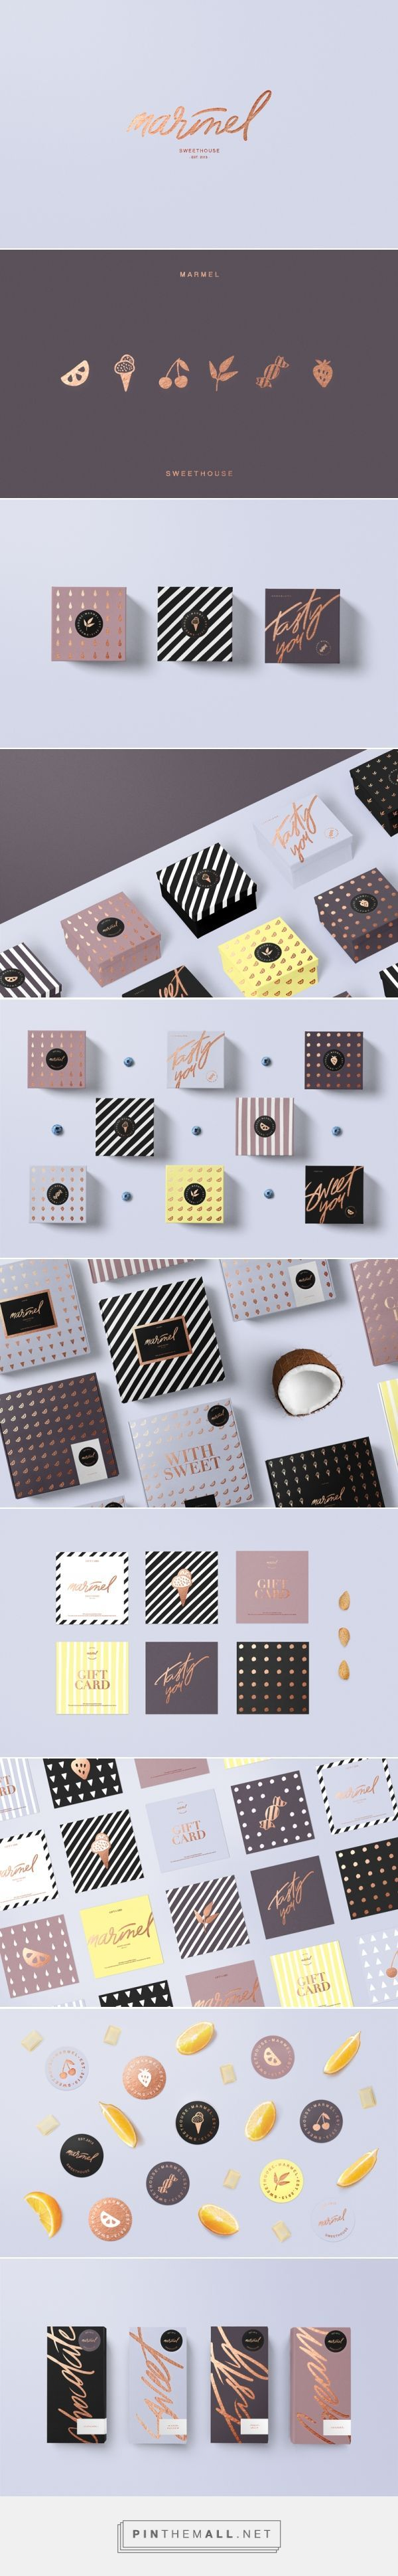 Marmel / packaging for  sweet shop by Diana Polar. If you like UX, design, or design thinking, check out theuxblog.com